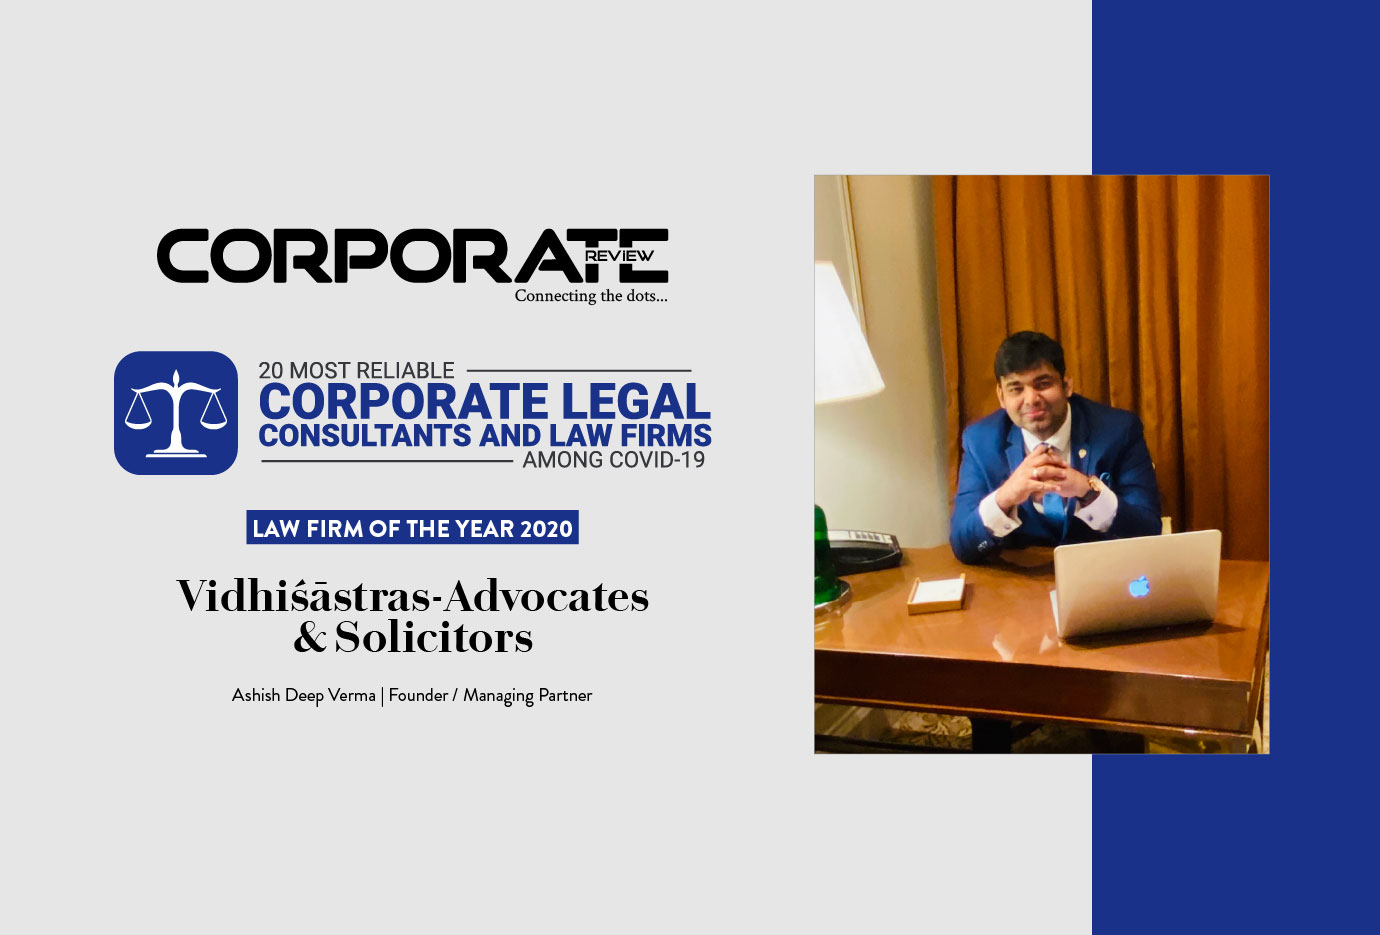 Vidhiśāstras-Advocates & Solicitors: cementing its position as the undisputed corporate law powerhouse under the leadership of Ashish Deep Verma